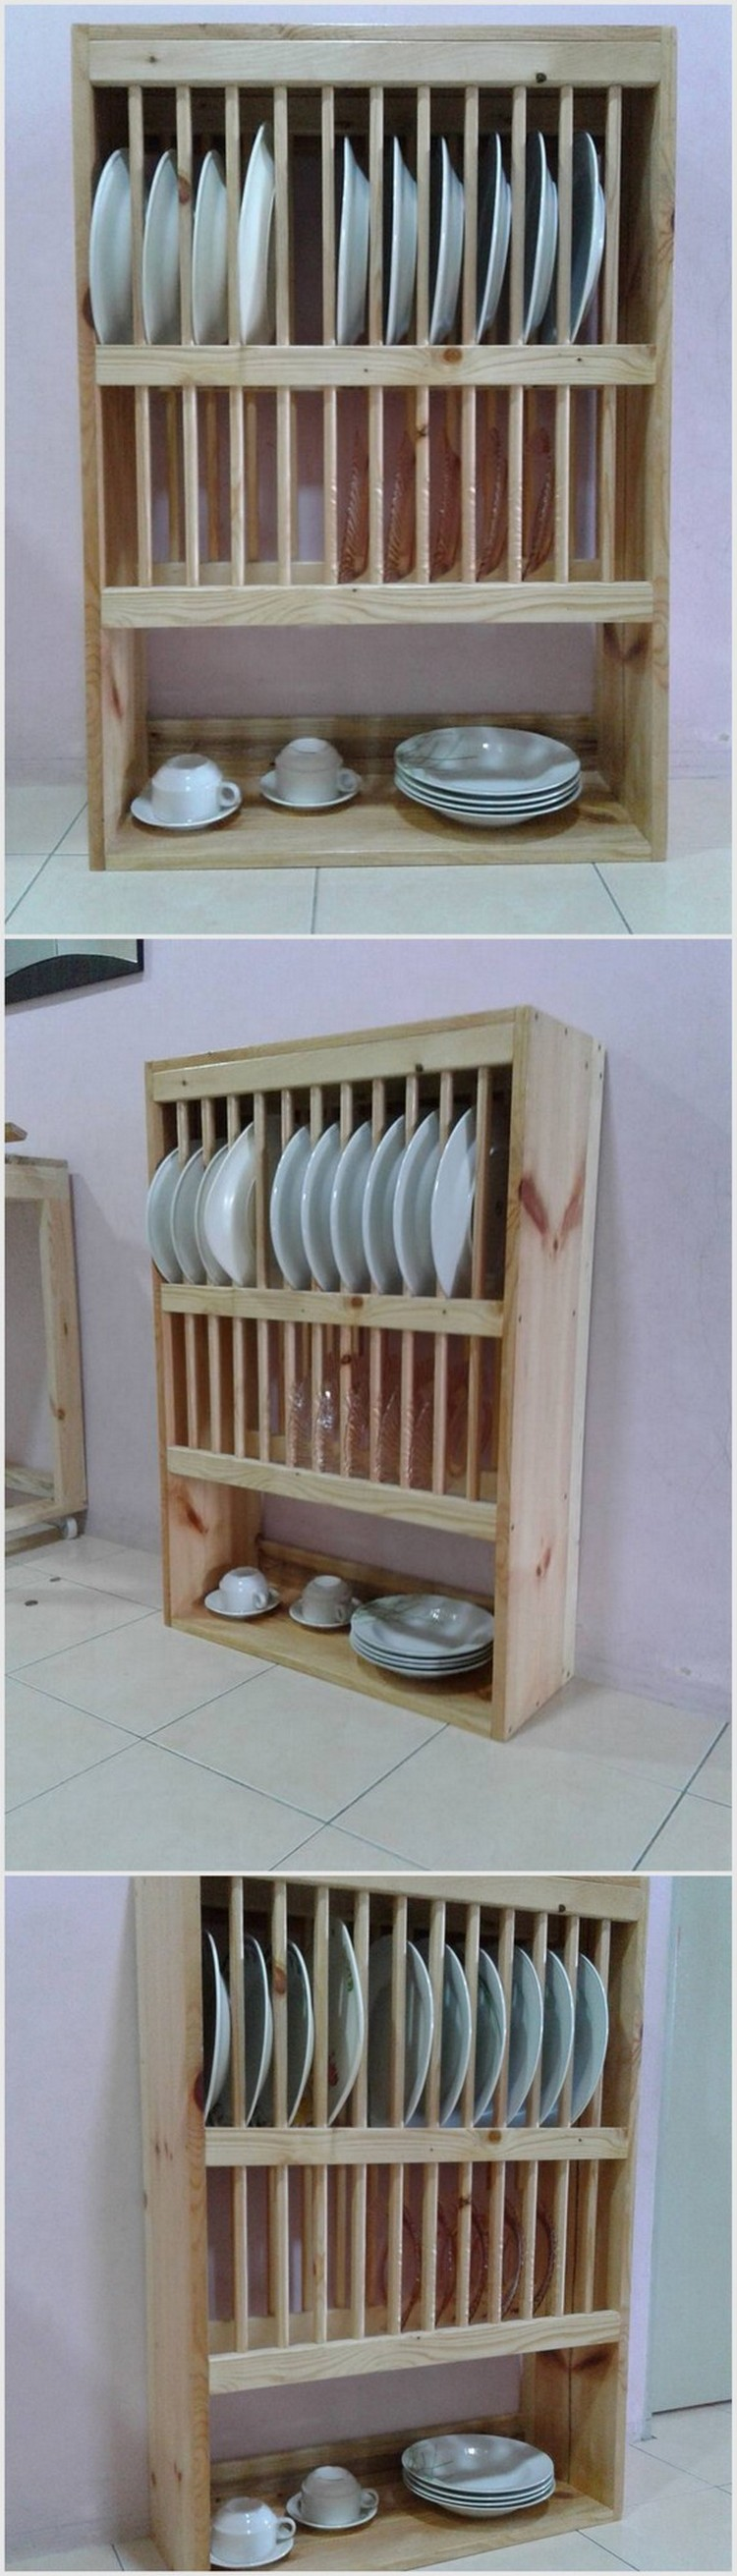 Wood Pallet Kitchen Project